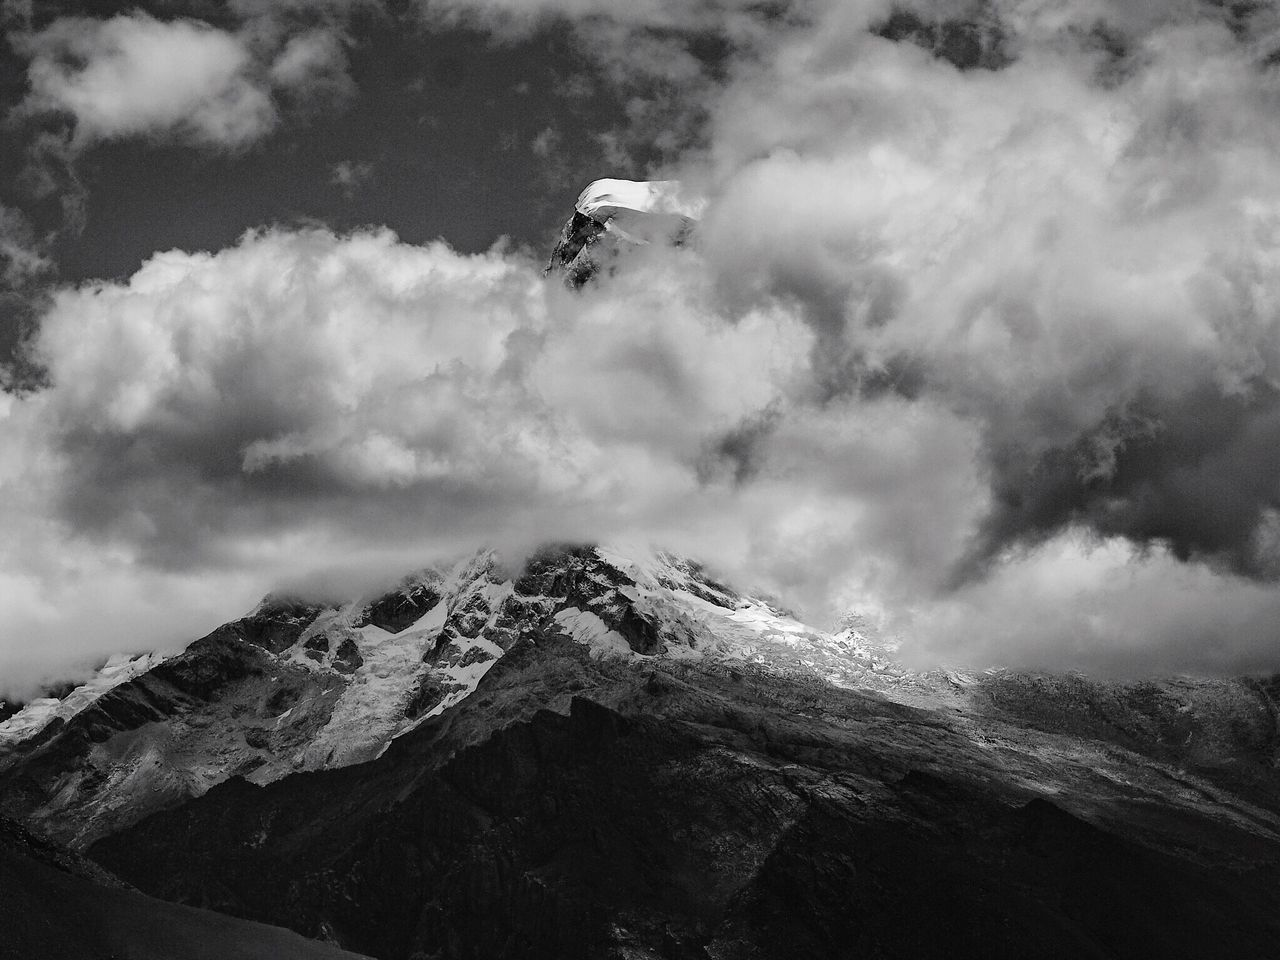 Huascaran (6768m), peeping out of the clouds Huascaran 6768 Meters Cordillera Blanca Peak Clouds Clouds And Sky Highest Mountain Andes Outdoors Scenics Landscape Photography Blackandwhite Ancash Peru Mountain Range Mountain Peak Cordillera De Los Andes Mountain Mania